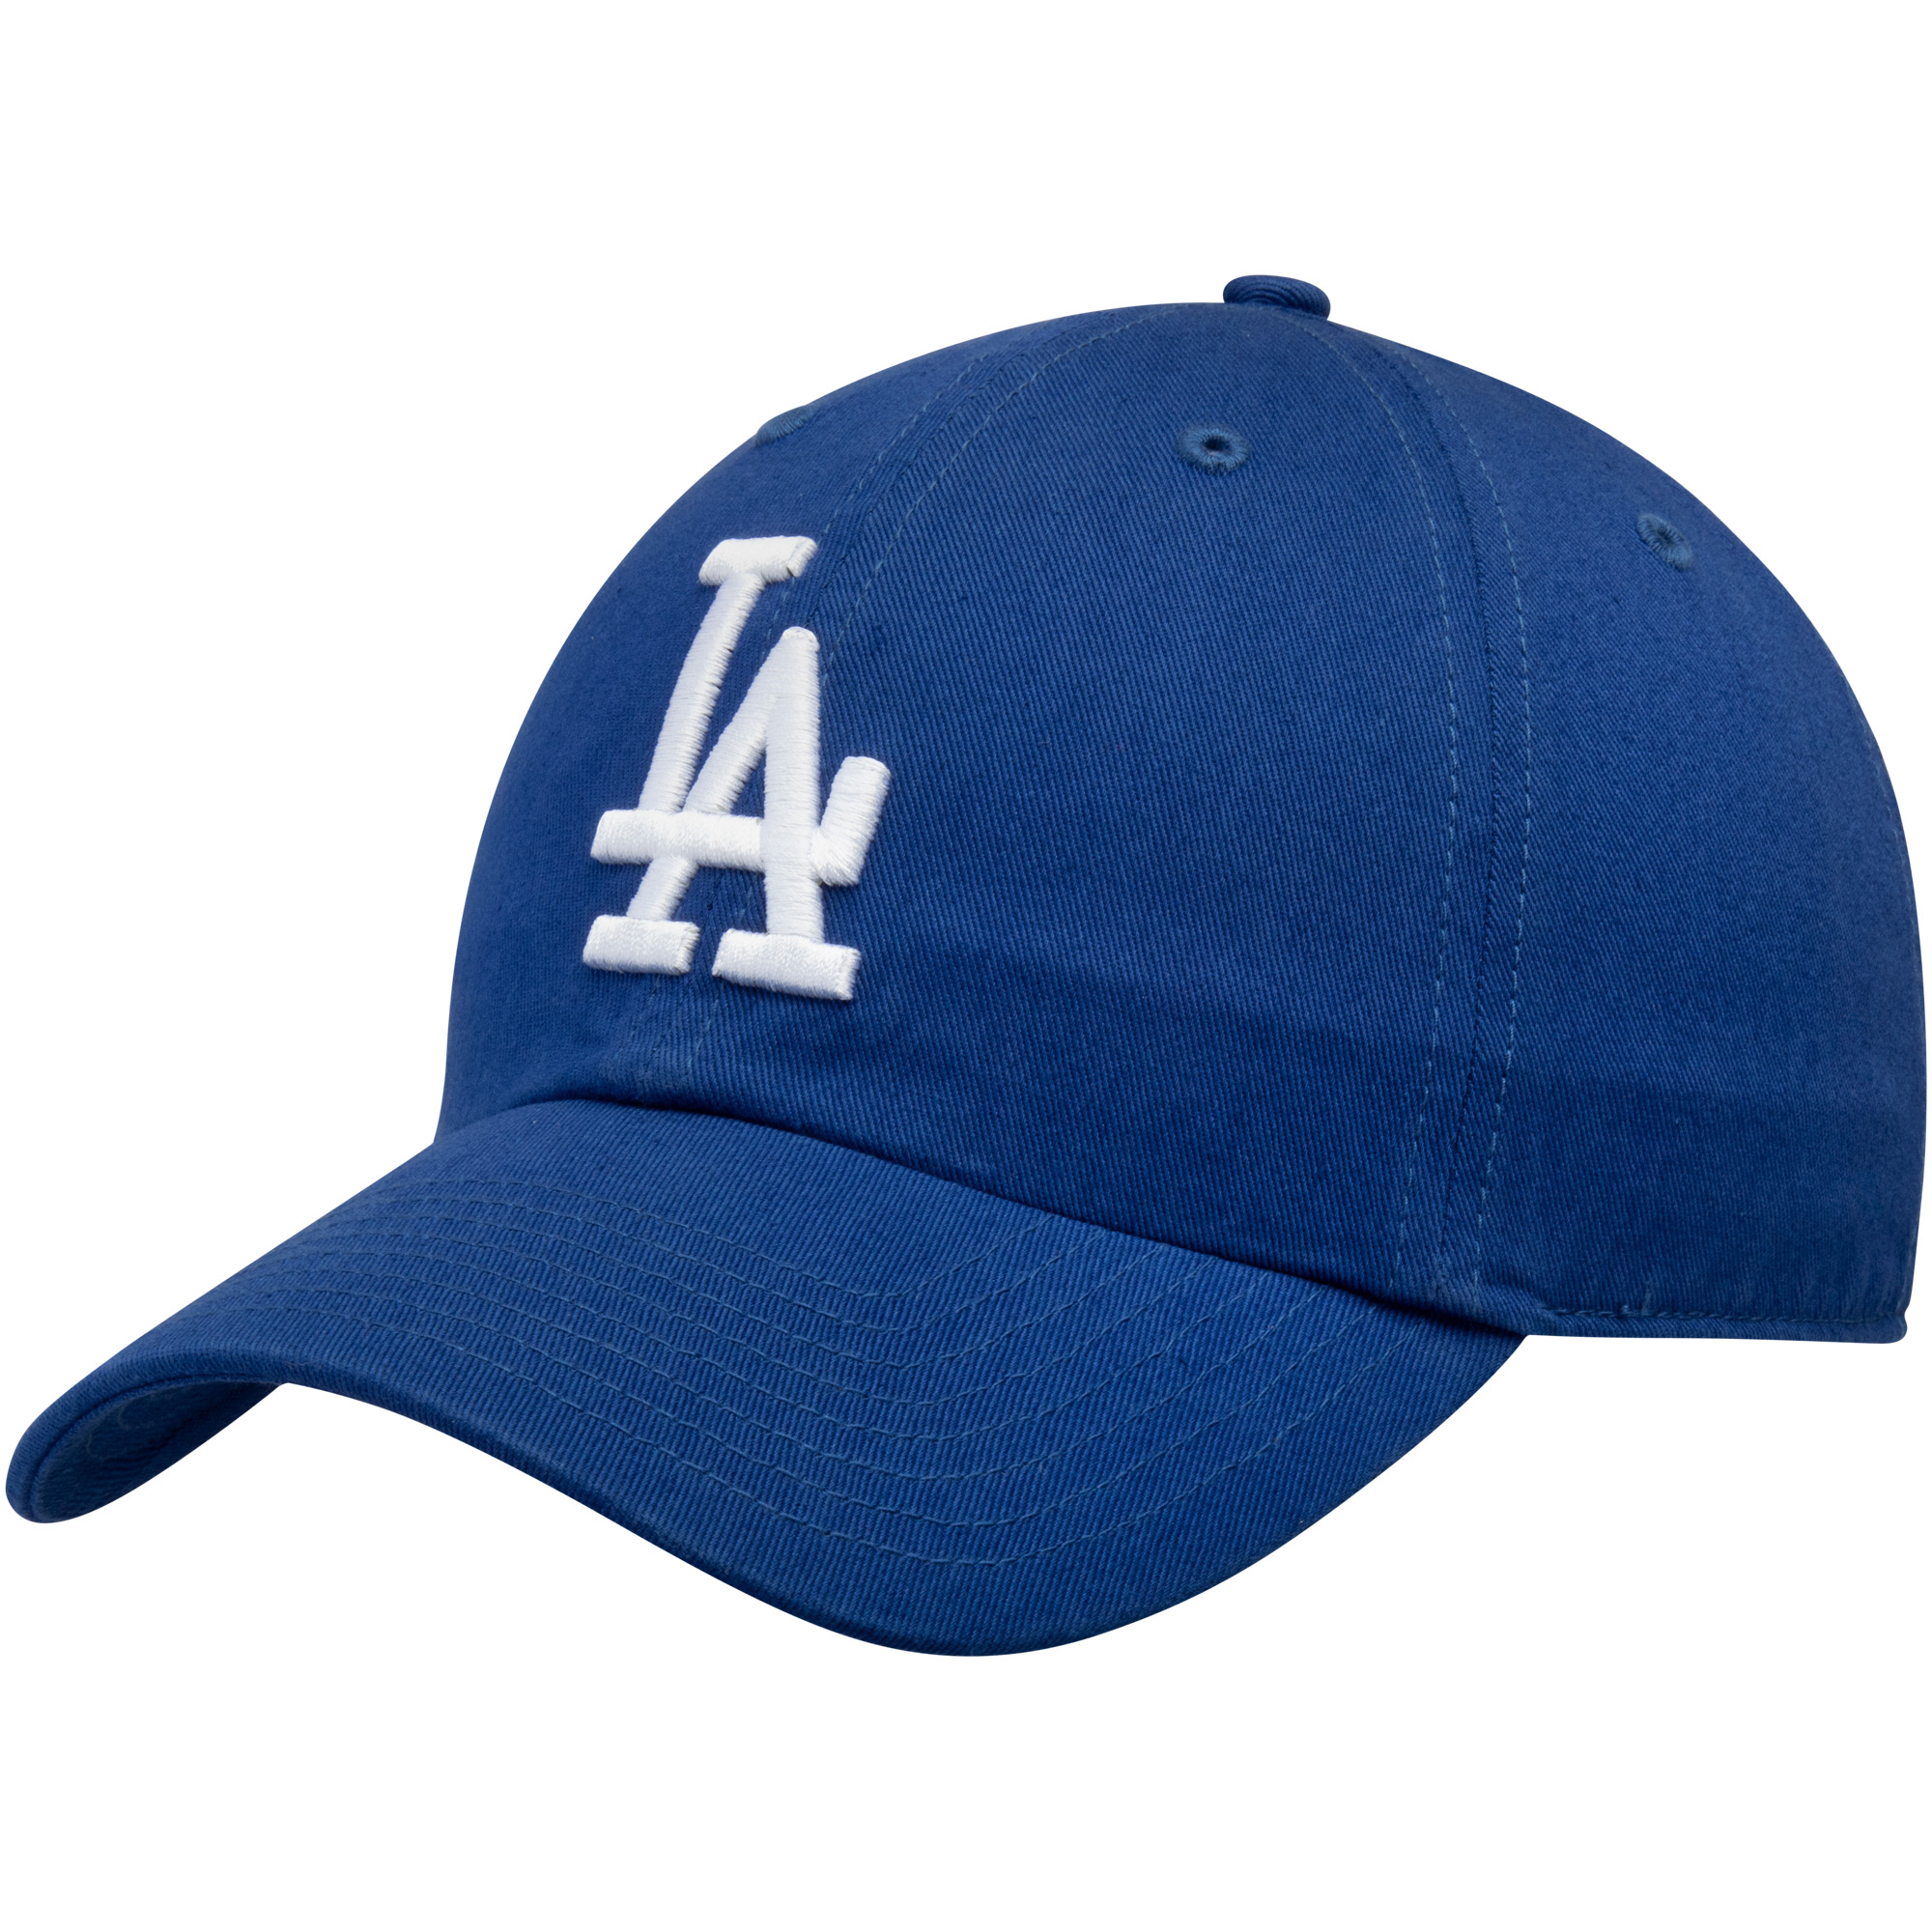 de3267b6195 Los Angeles Dodgers Team Shop - Walmart.com